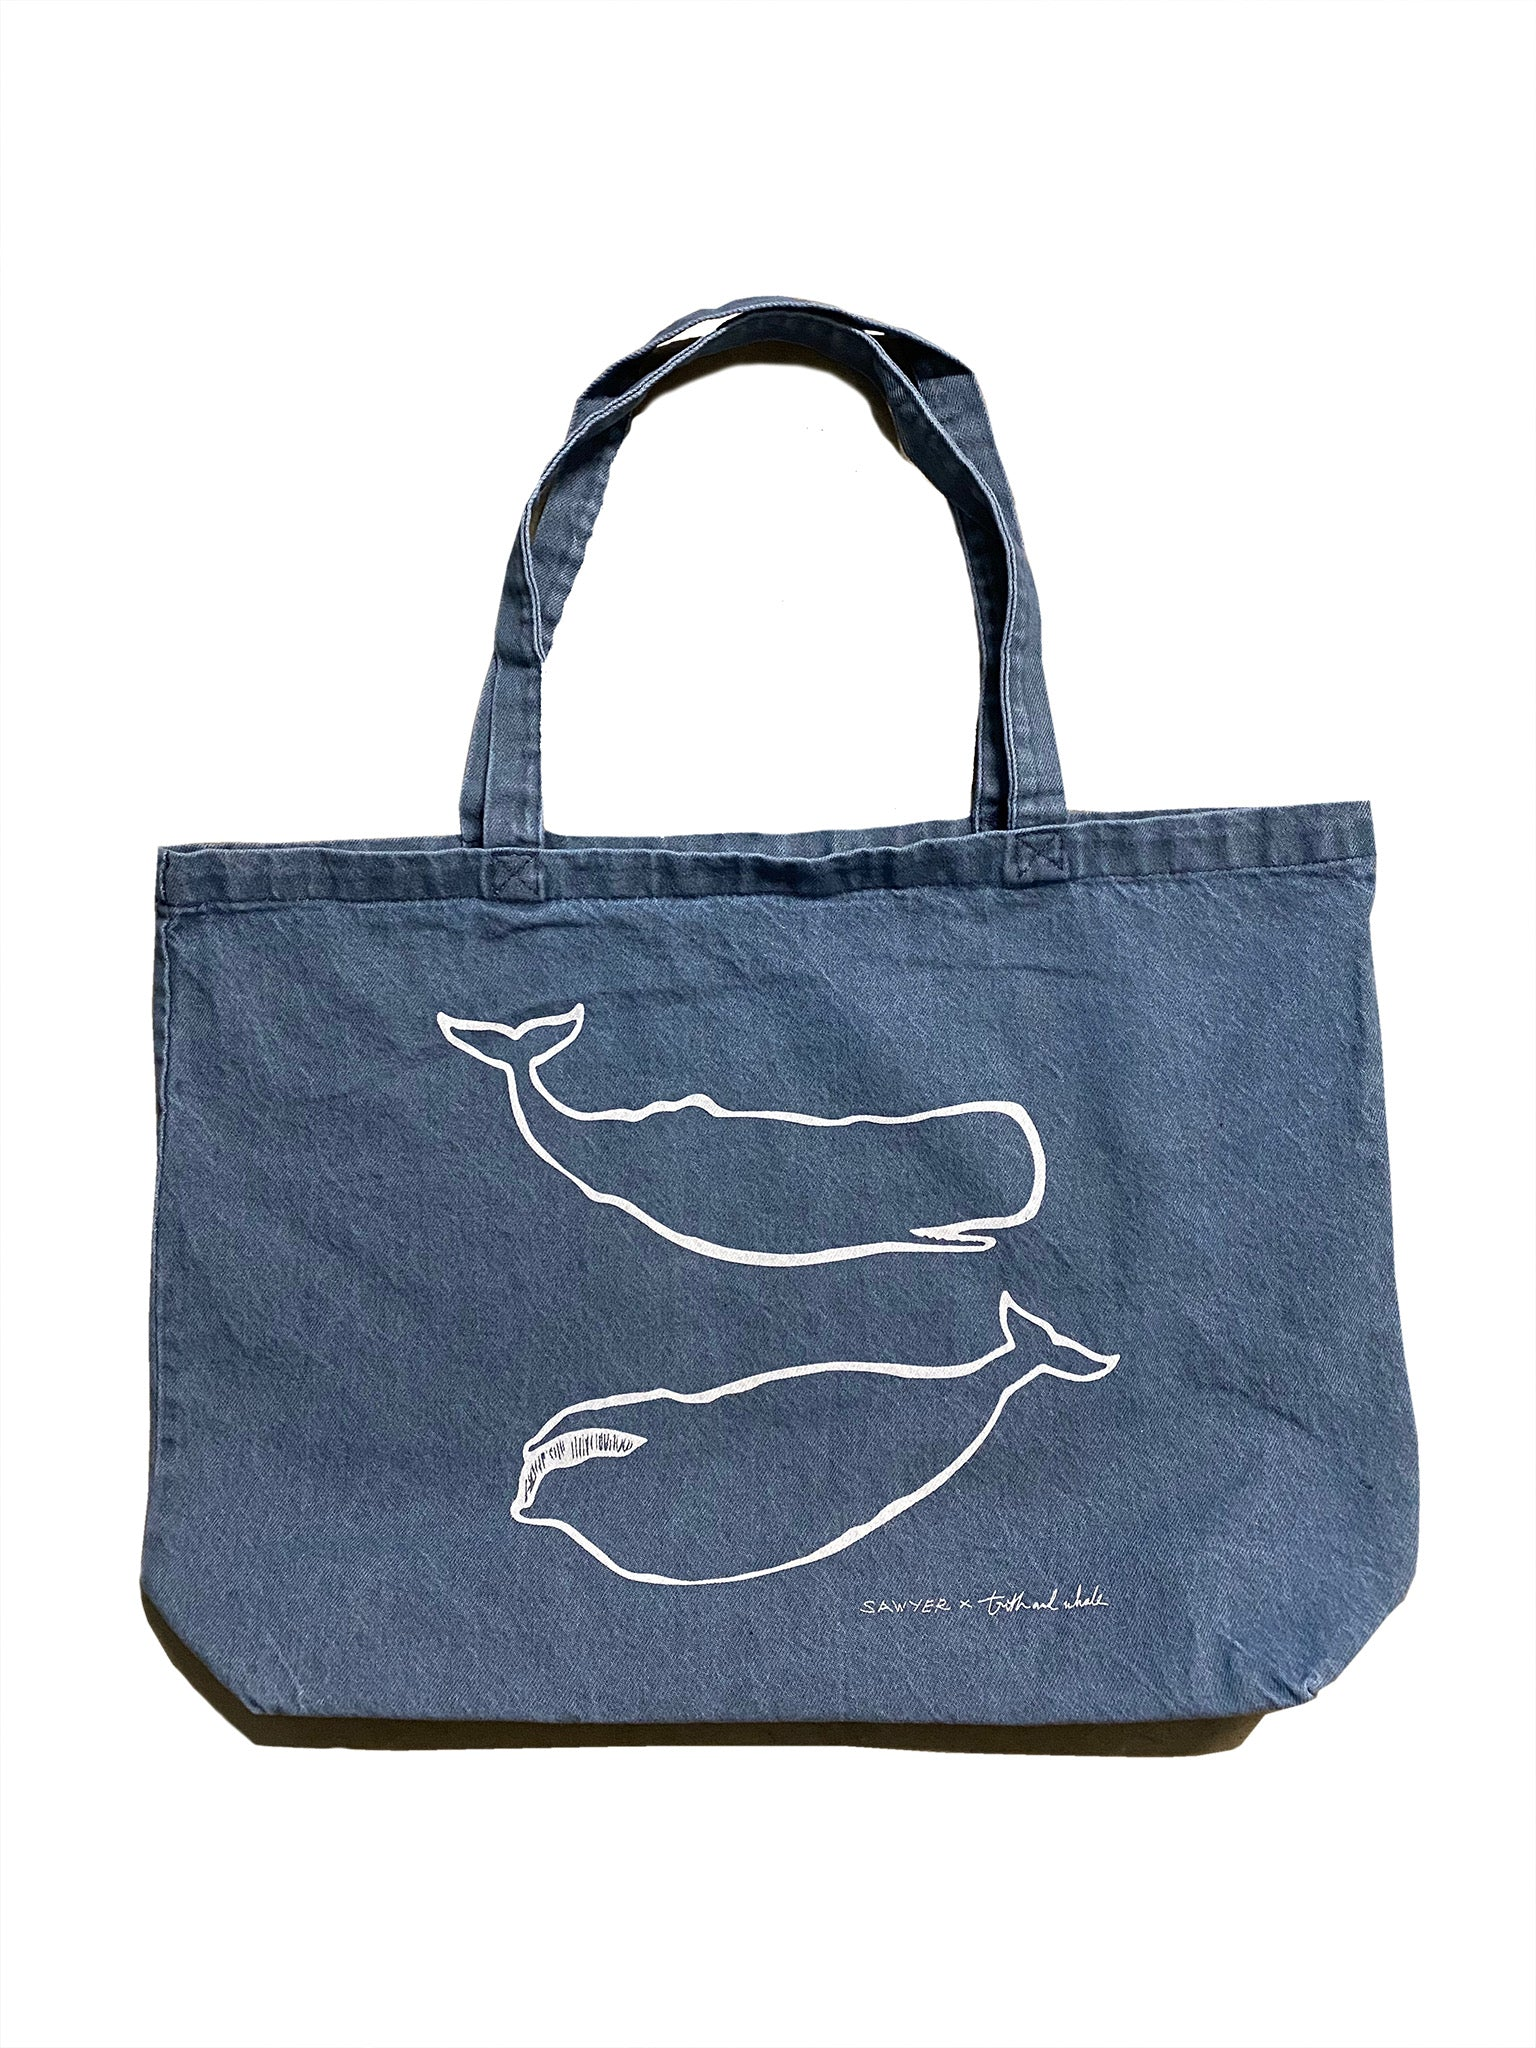 SAWYER x TRUTH & WHALE OUTLINER DENIM TOTE